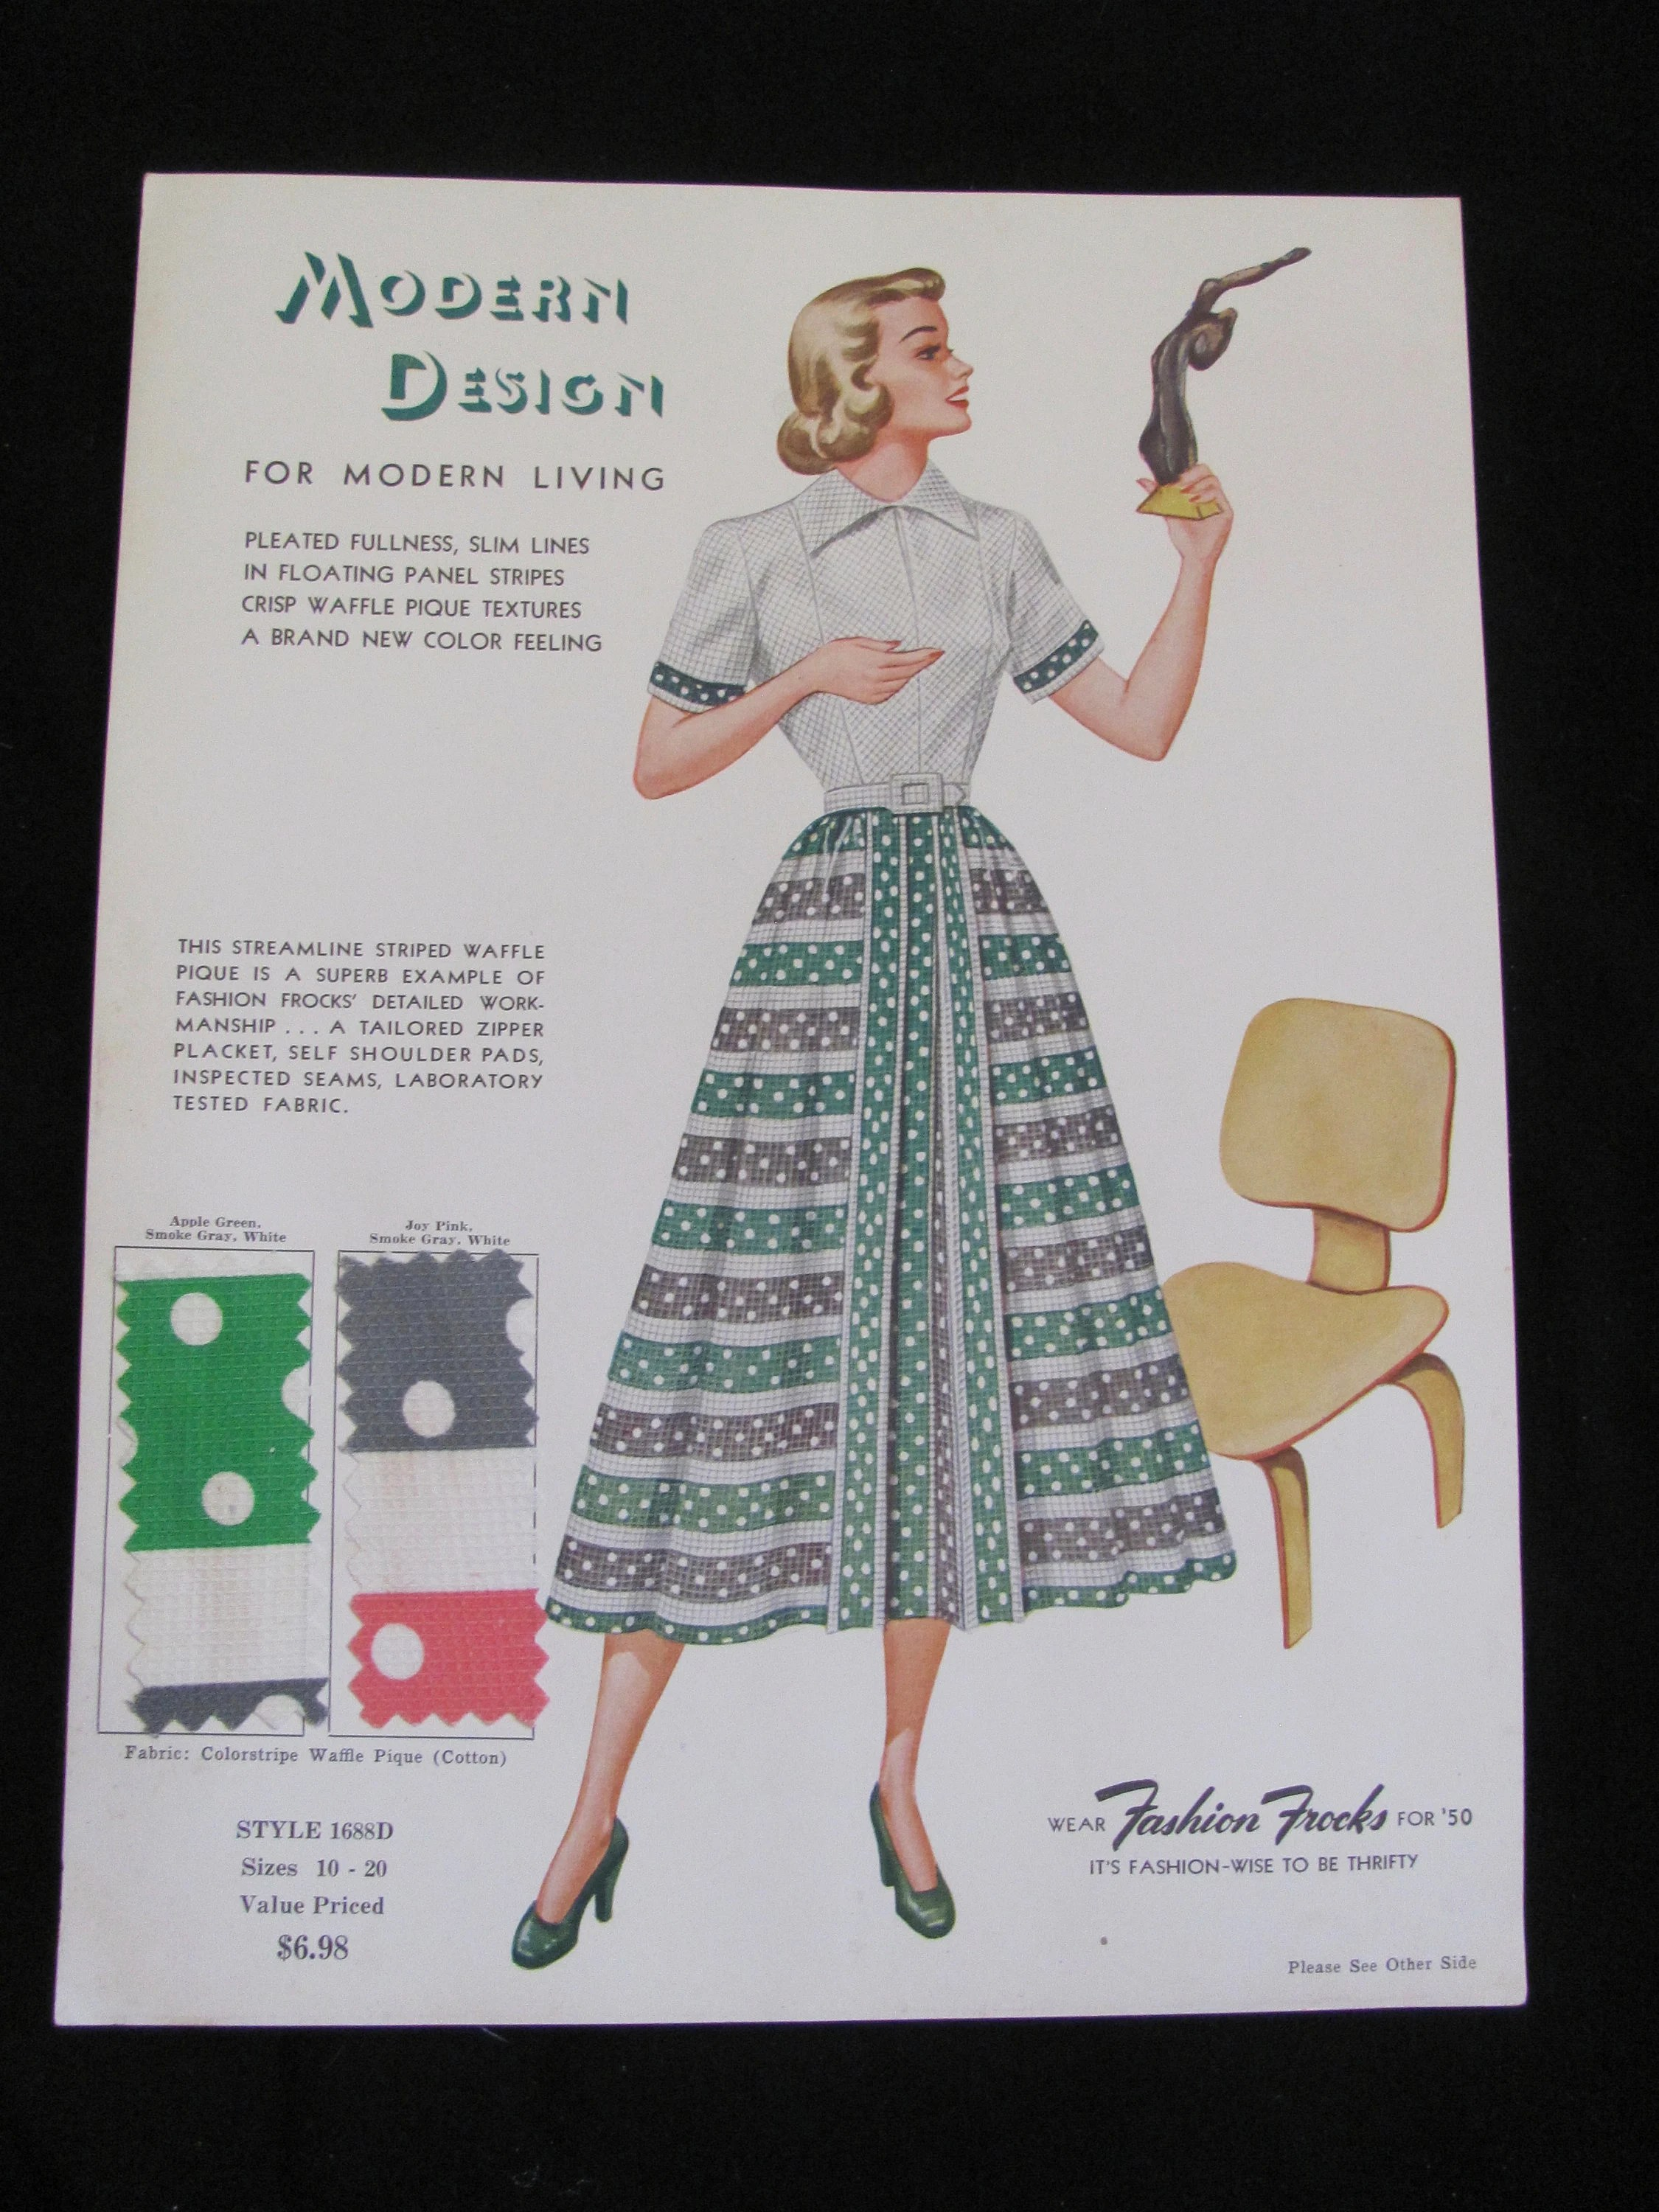 Vintage Retro Fashion Frocks Salesman Sample Advertisement Etsy